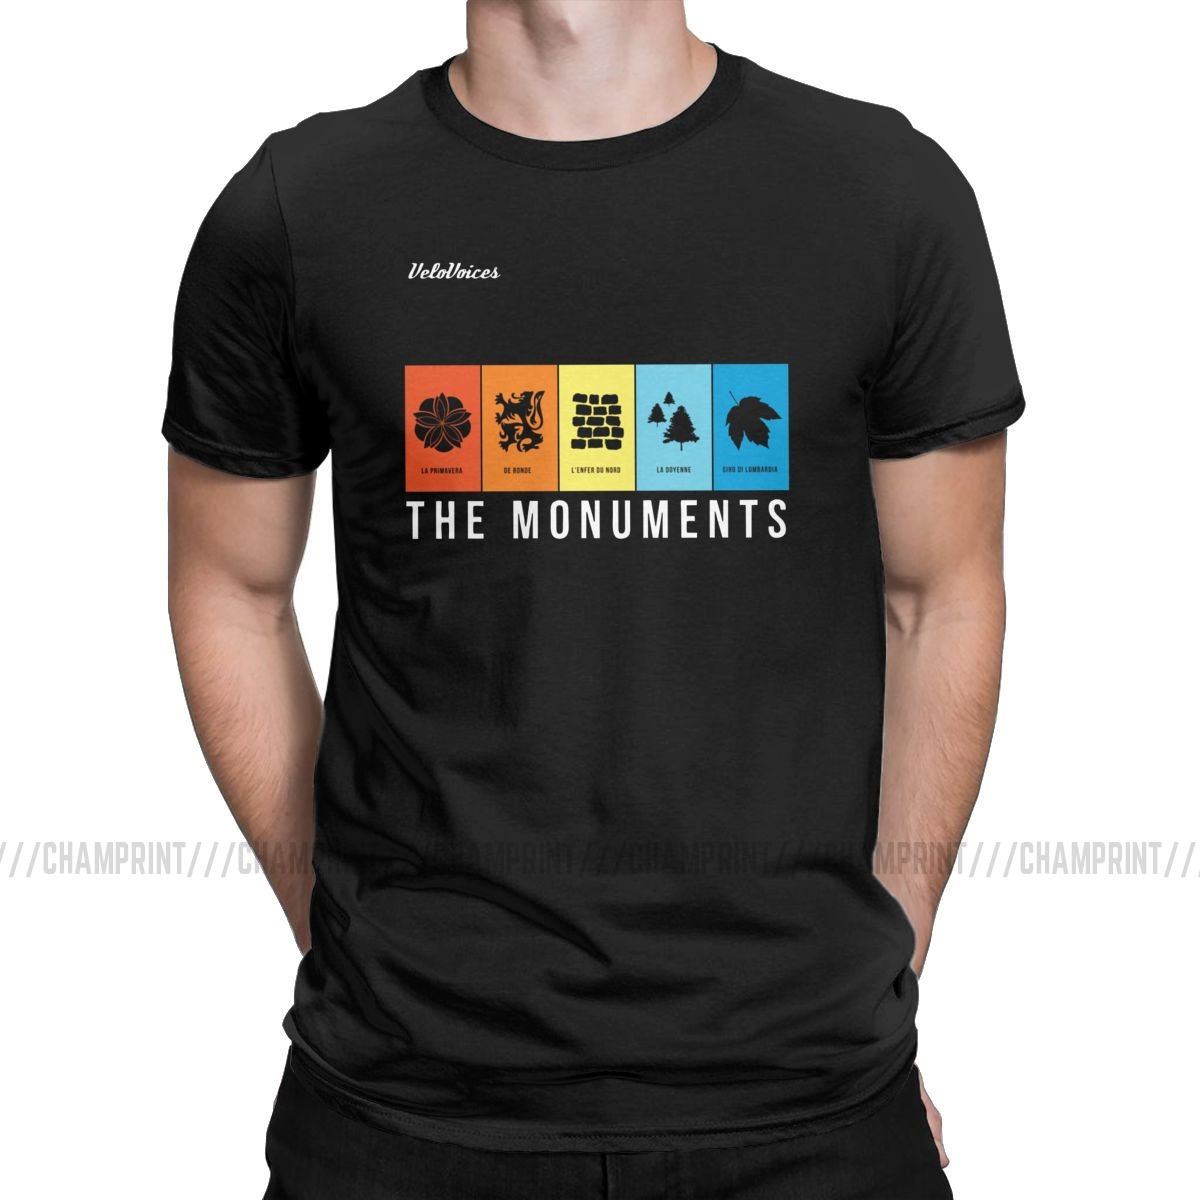 VeloVoices Monuments T Shirt Men Fashion For Male T-Shirt Round Neck Bike Cycling Bicycle Biking Ride Tees Clothes Gift Idea